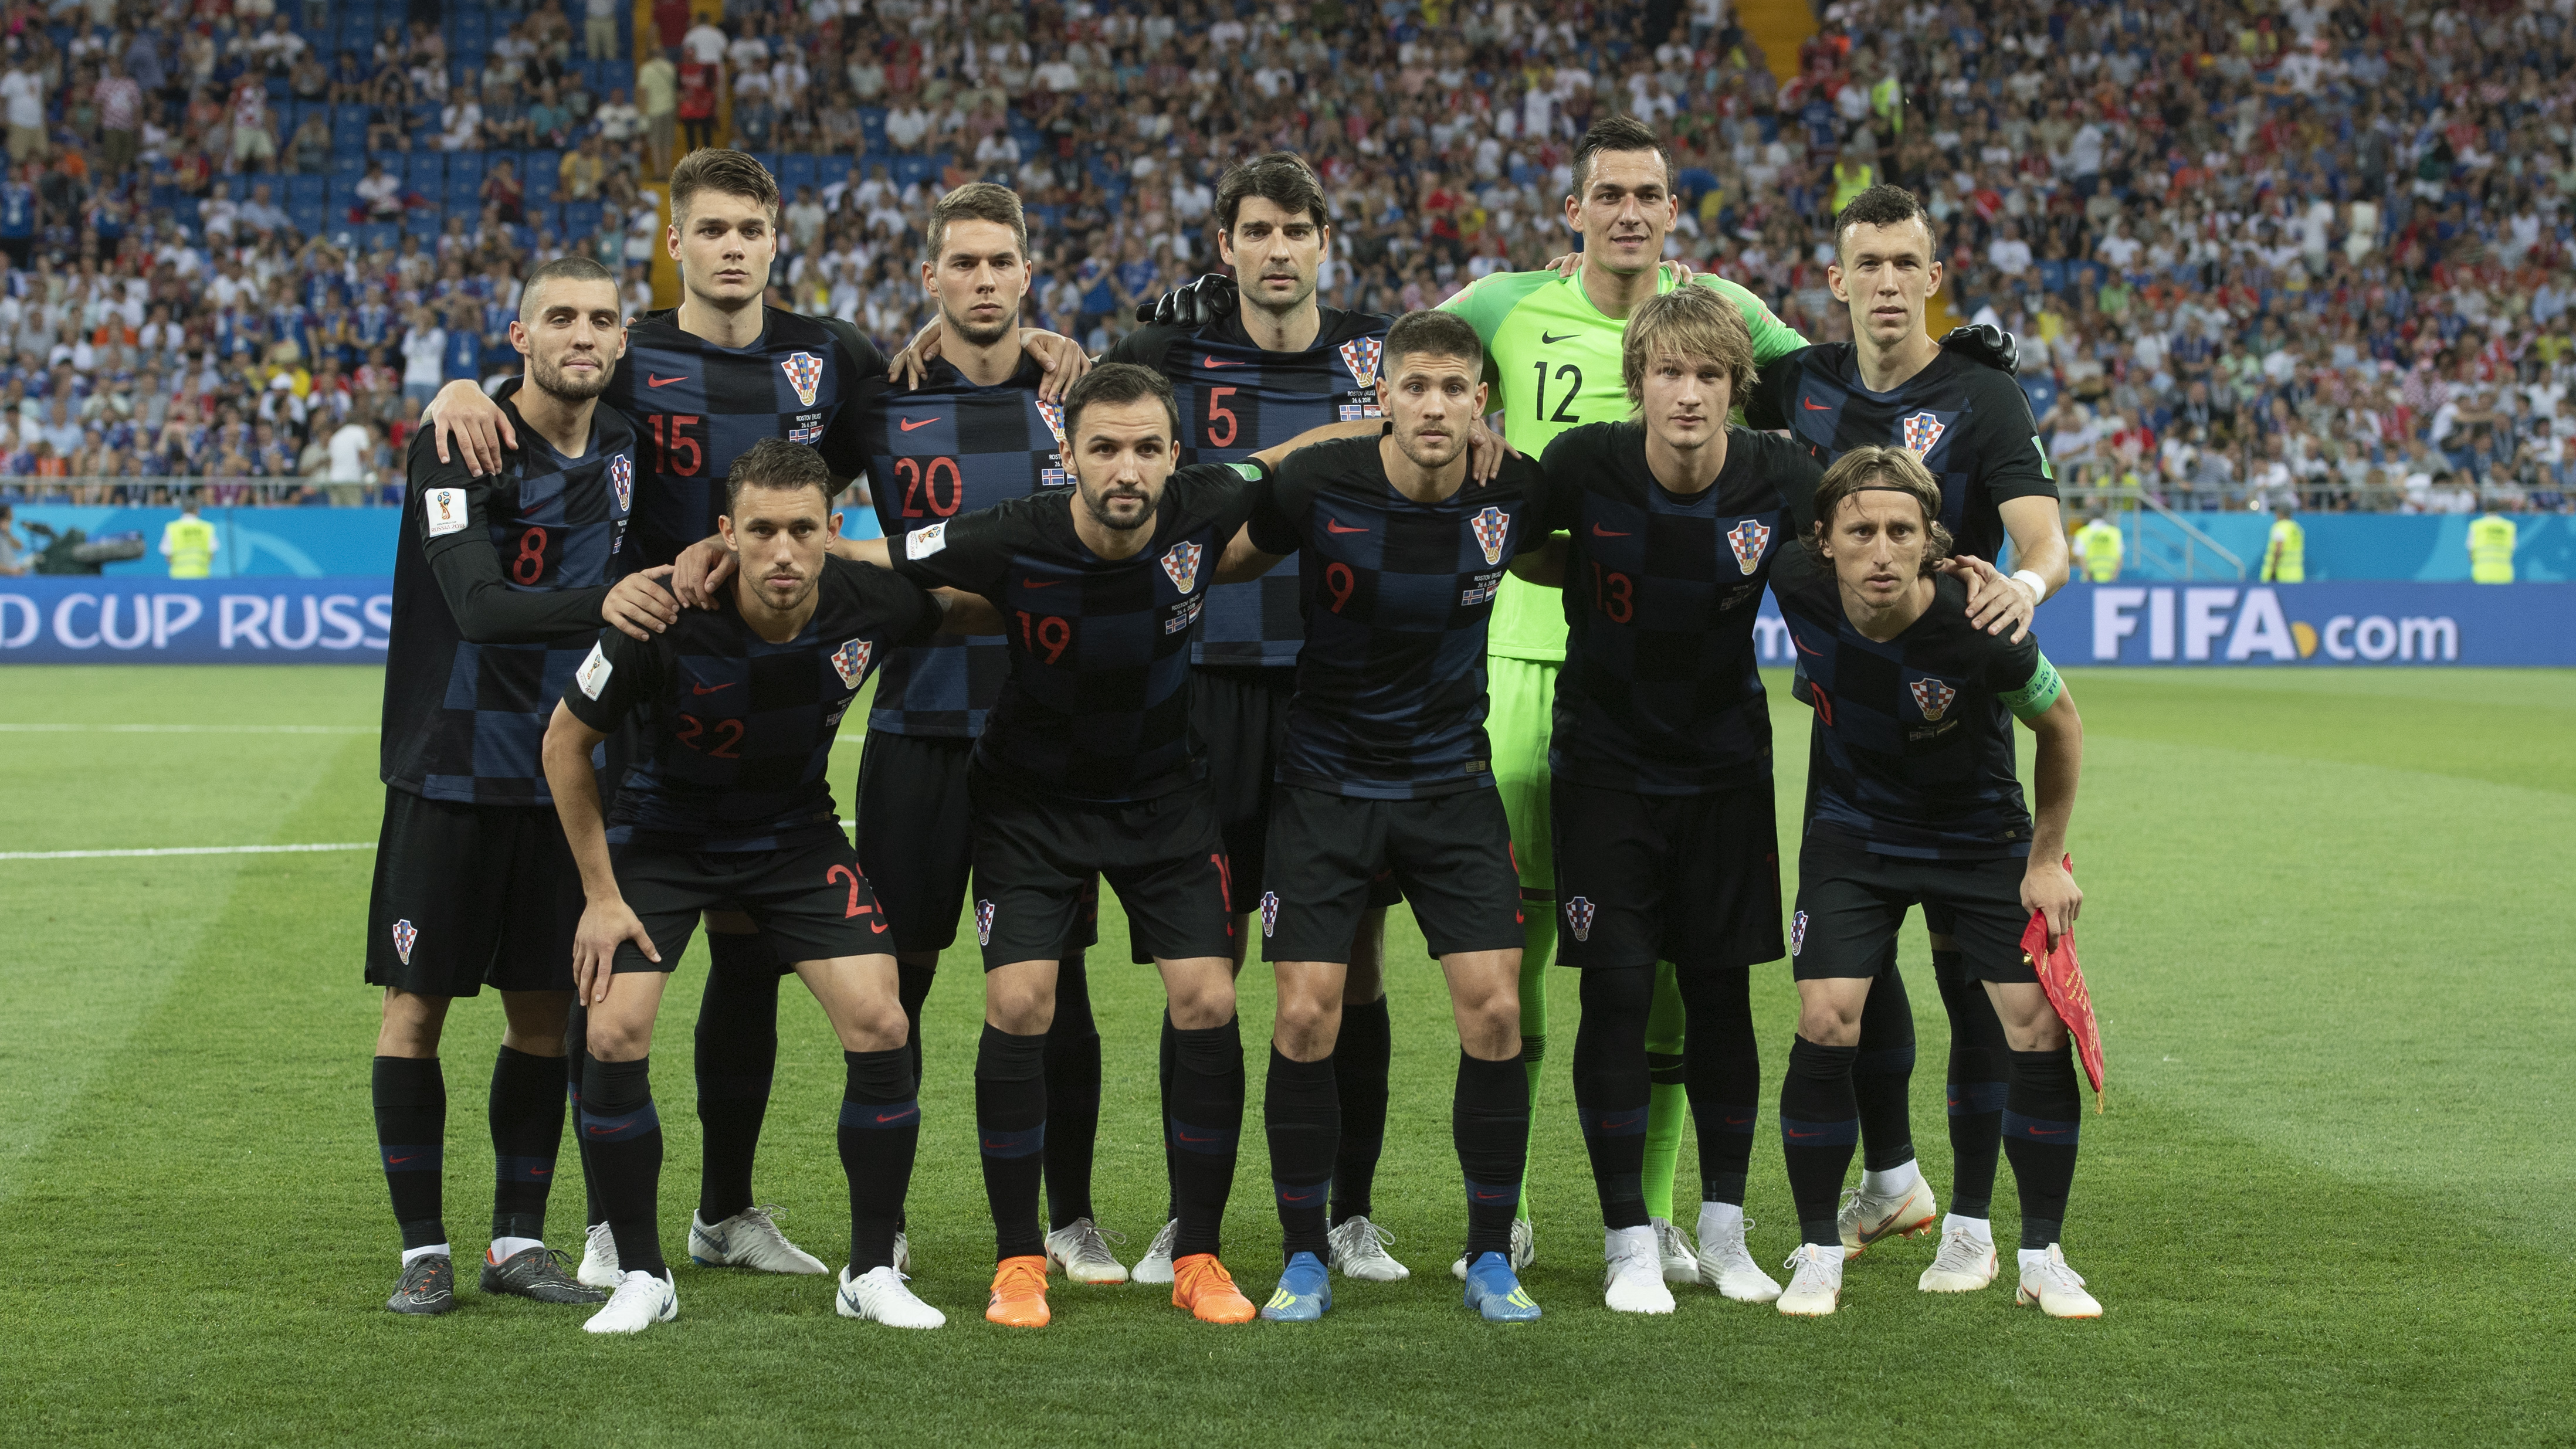 In The Third Final  Fifa World Cup Group D Match Croatia Defeated Iceland  Securing The Top Spot And Booking A Round Of  Date With Denmark